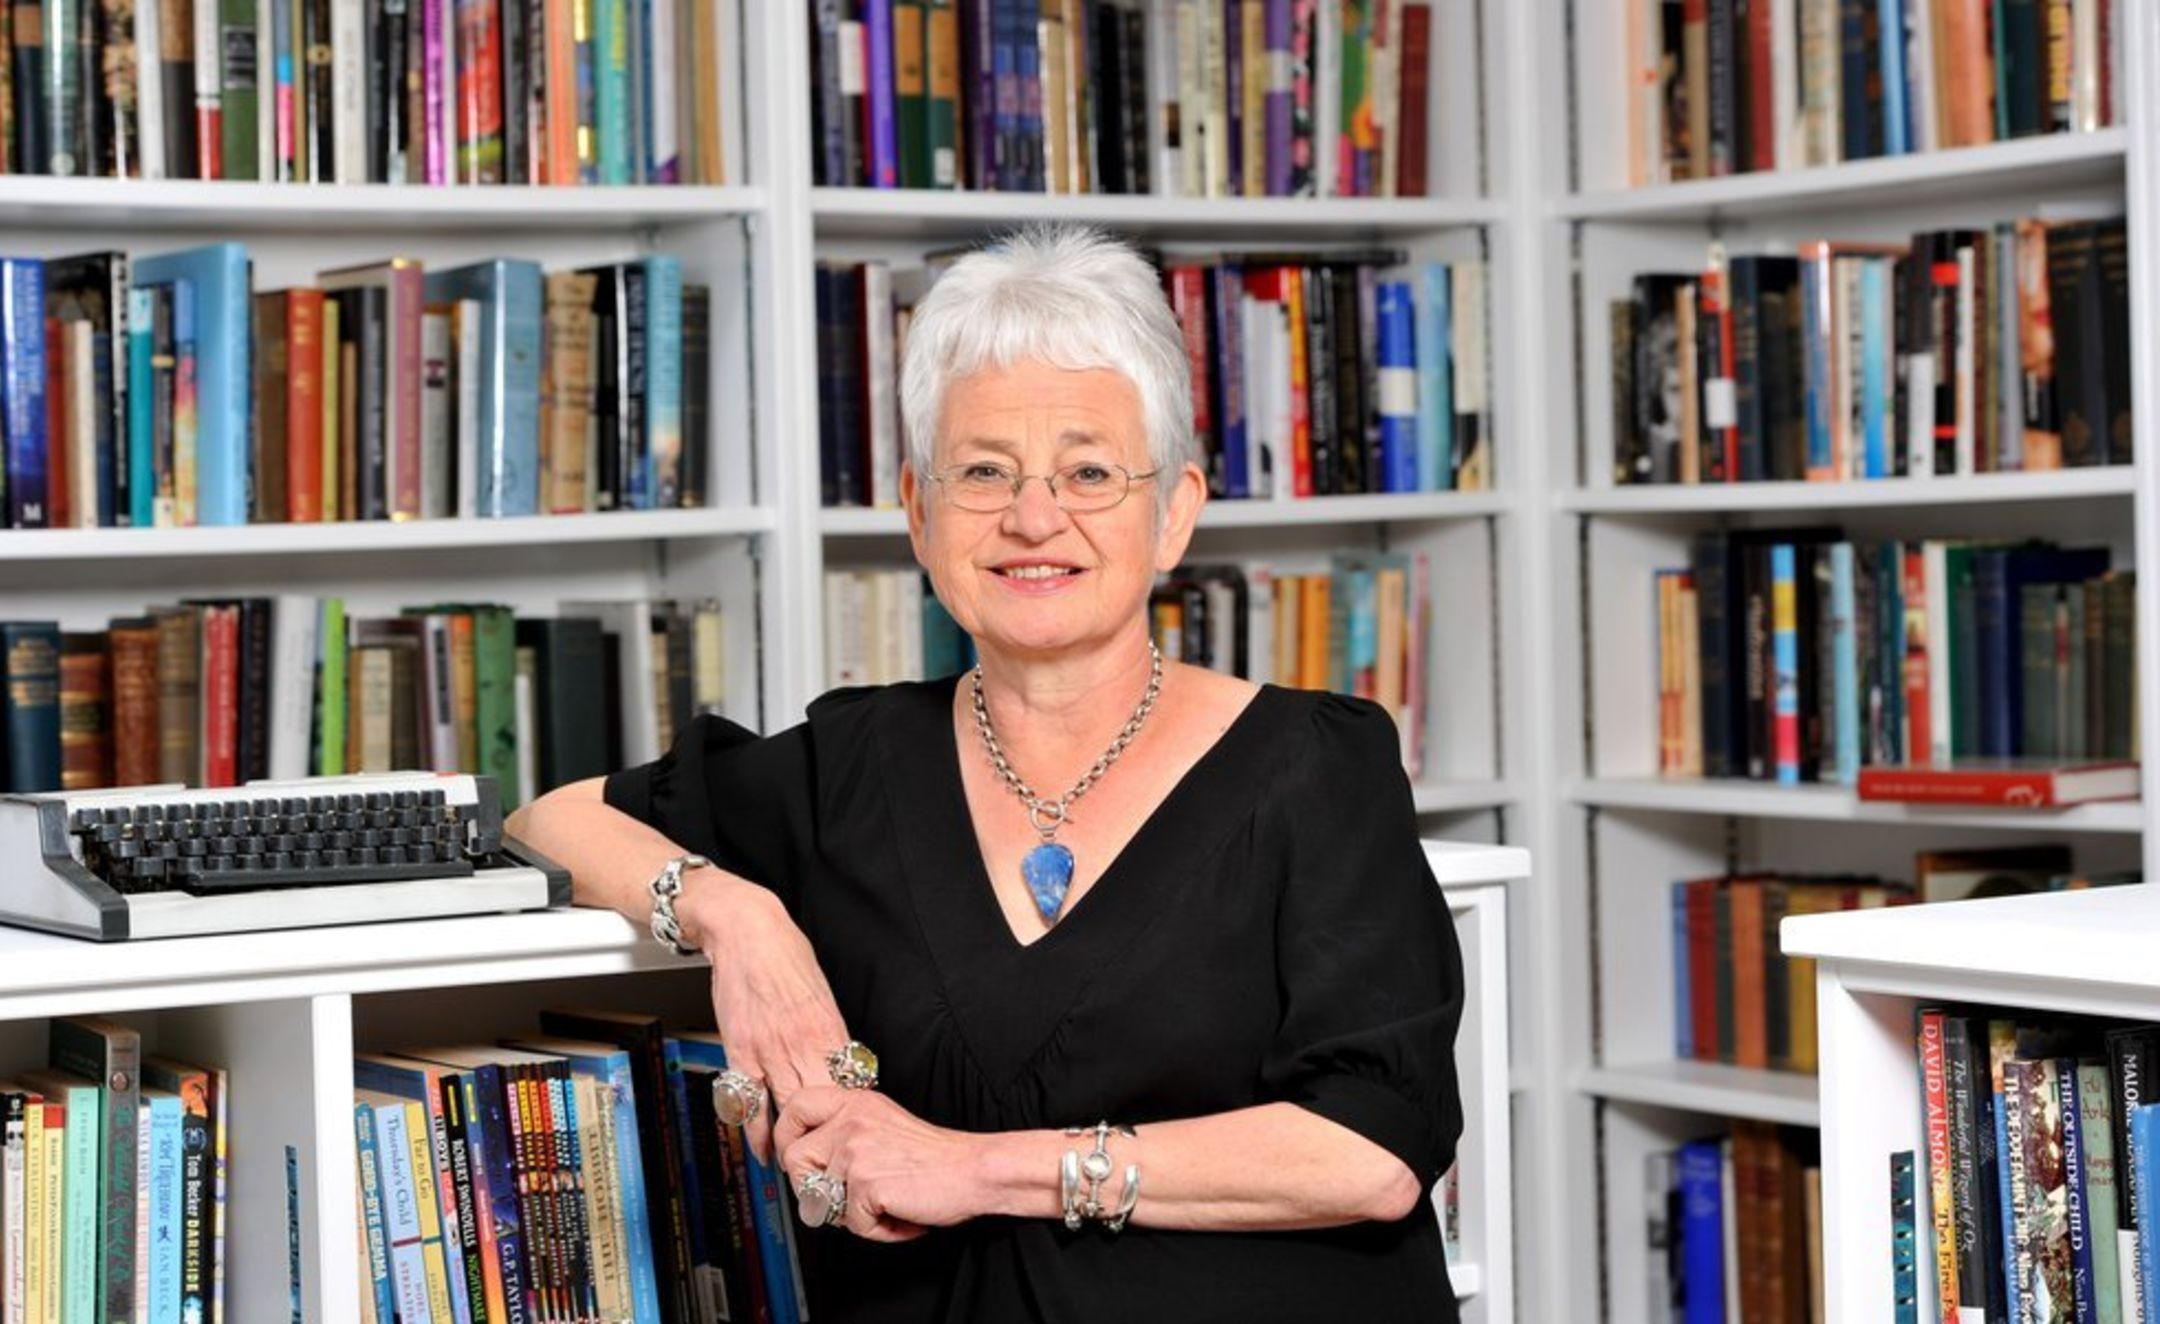 A photo of the author Jacqueline Wilson